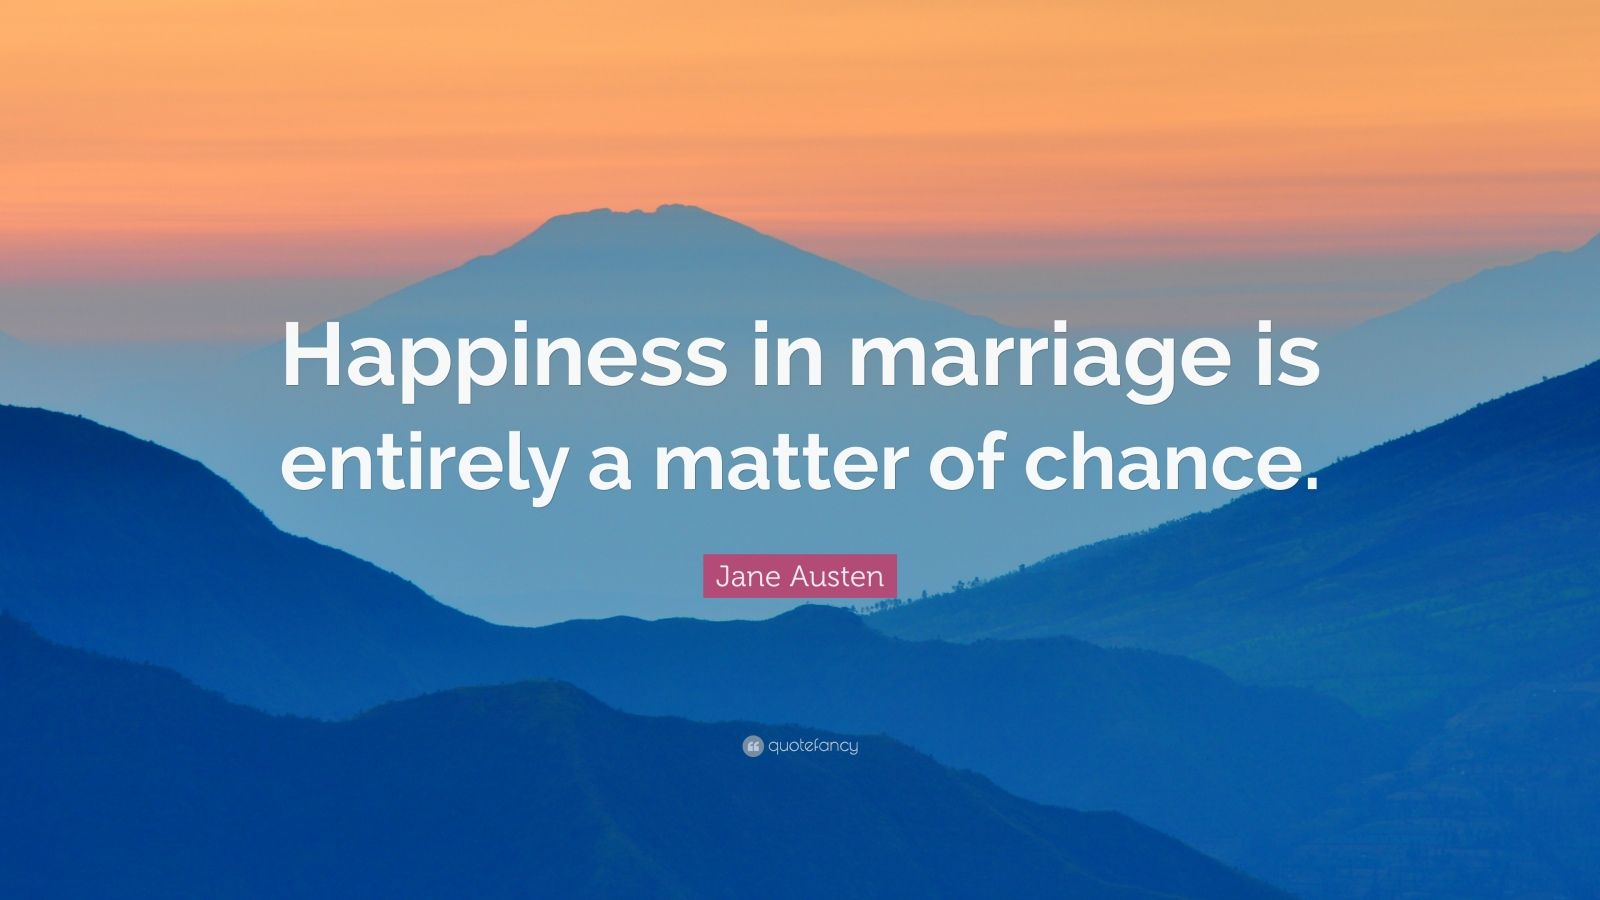 happiness in marriage The truth about marriage and happiness and how the church can begin  proclaiming that truth natasha robinson, guest blogger the truth.